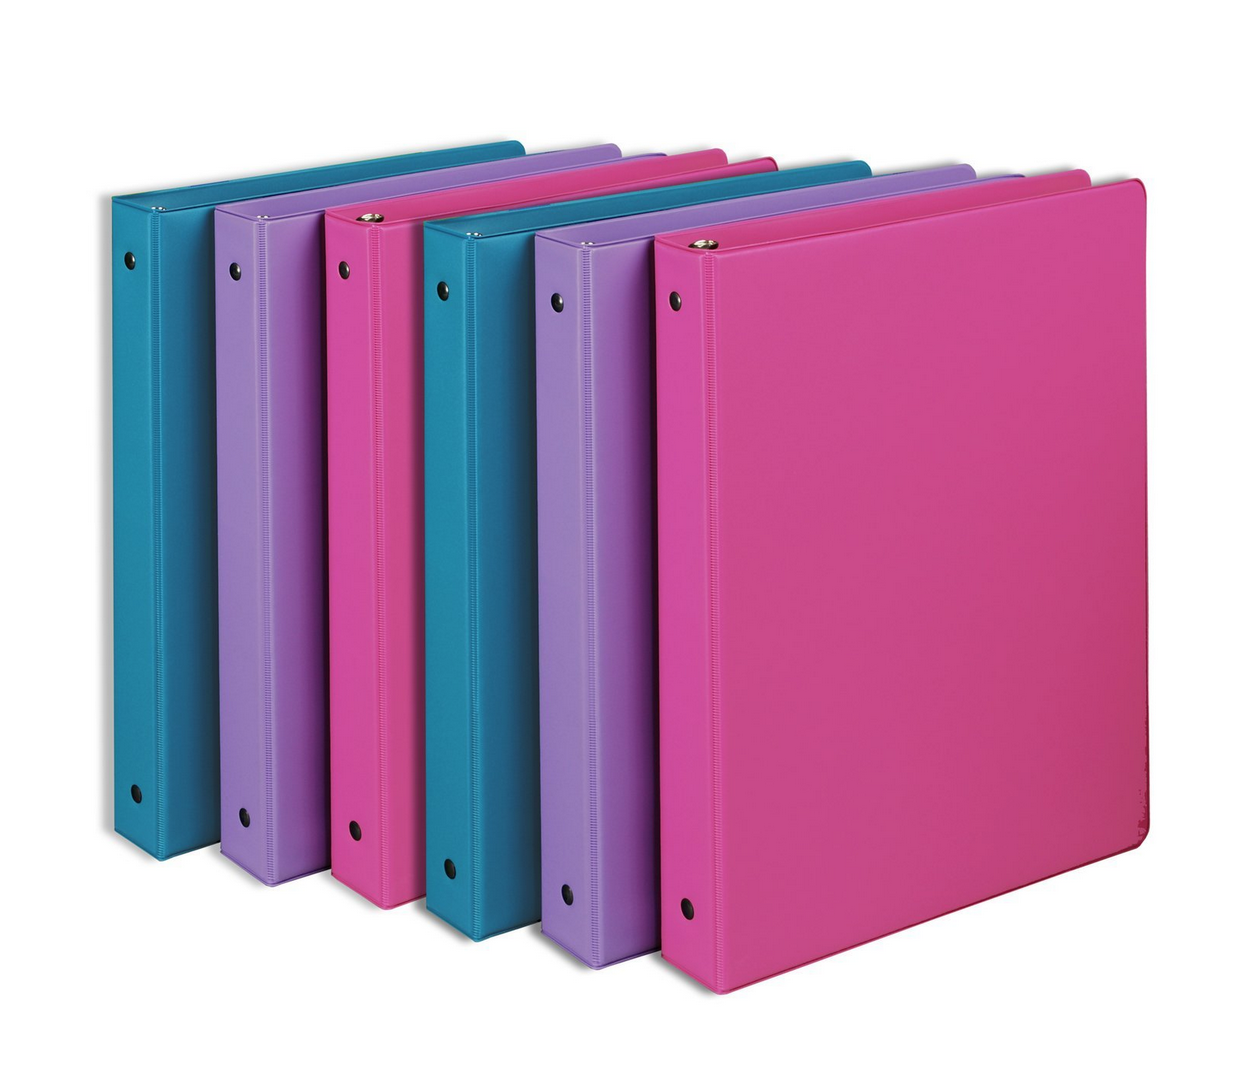 6-Pack Of Samsill 1-Inch Round Ring Binders Only $8.22